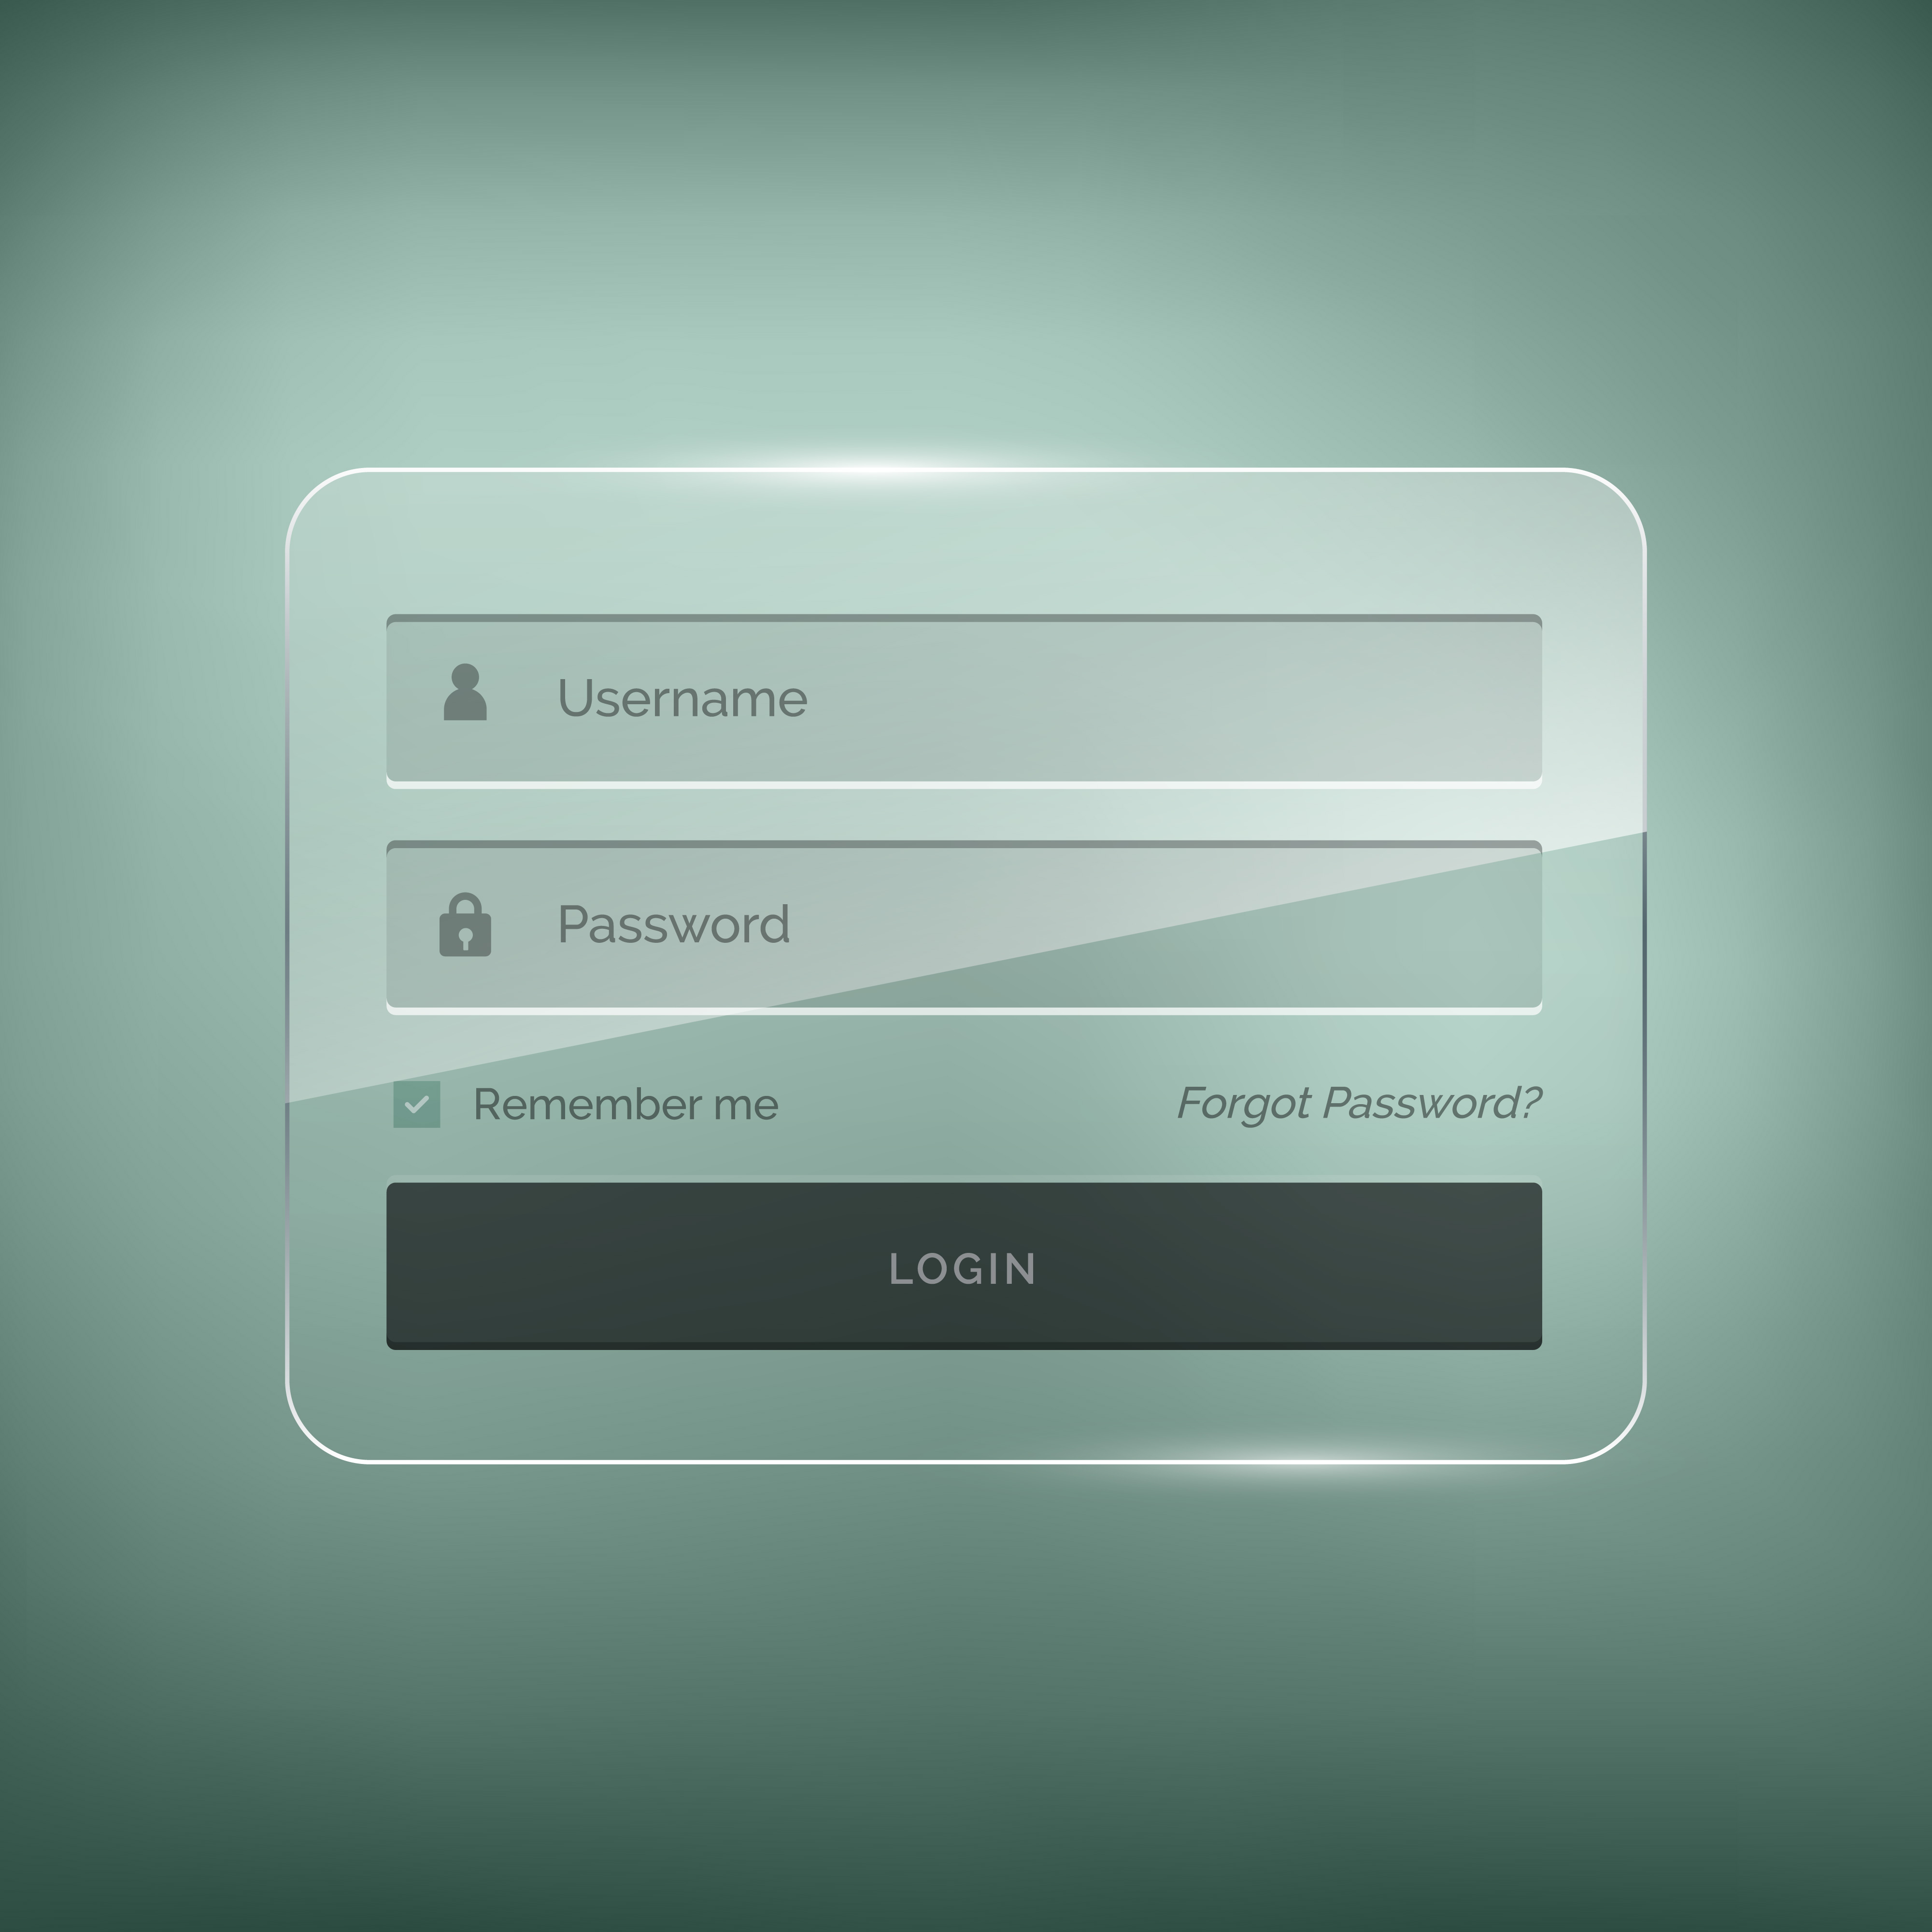 Glossy Stylish Login Form Design With Username And